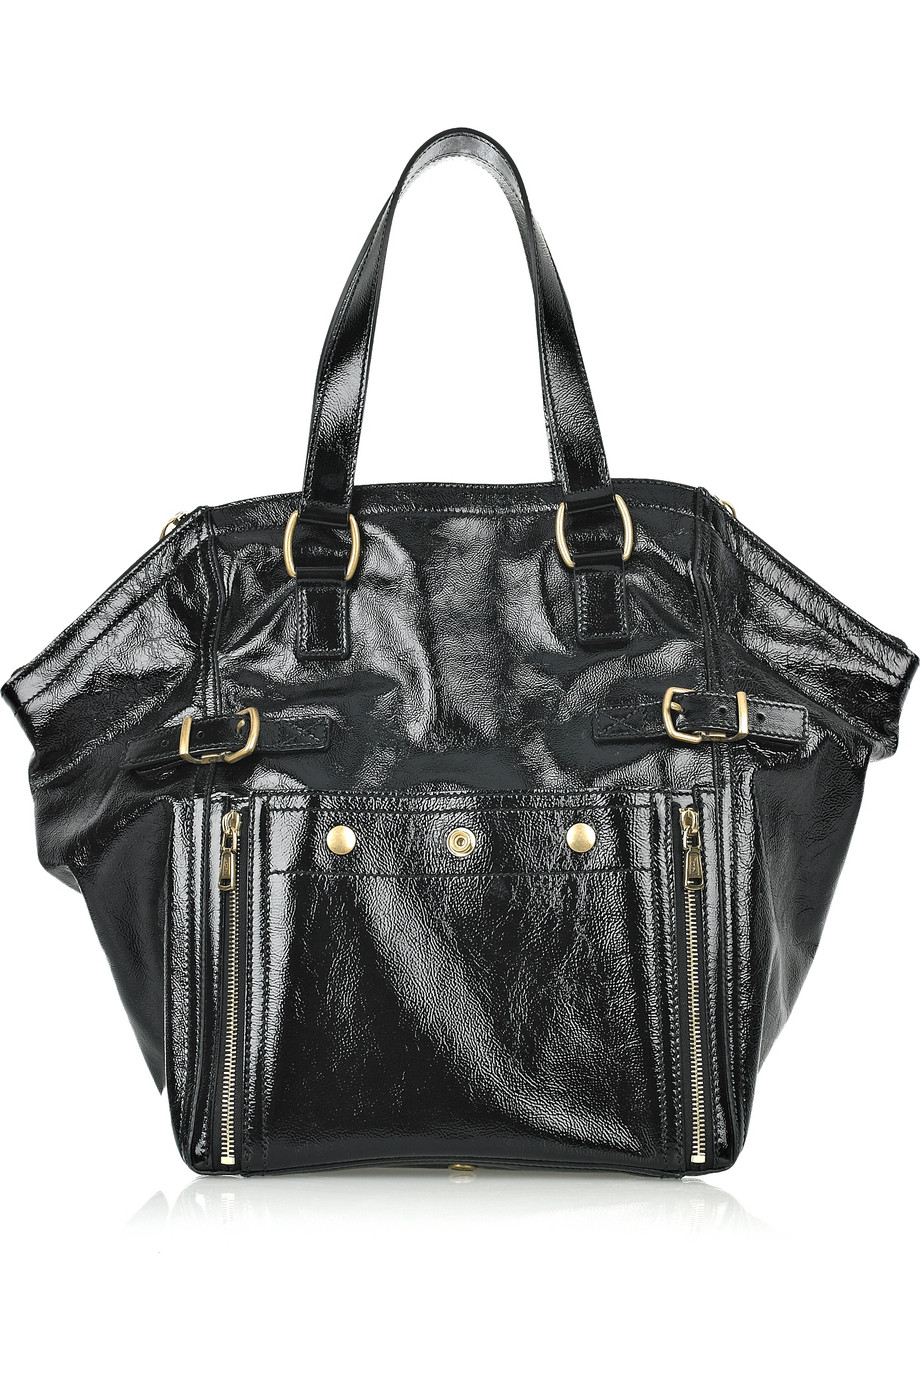 Saint laurent Downtown Patent-leather Tote in Black (nero) | Lyst